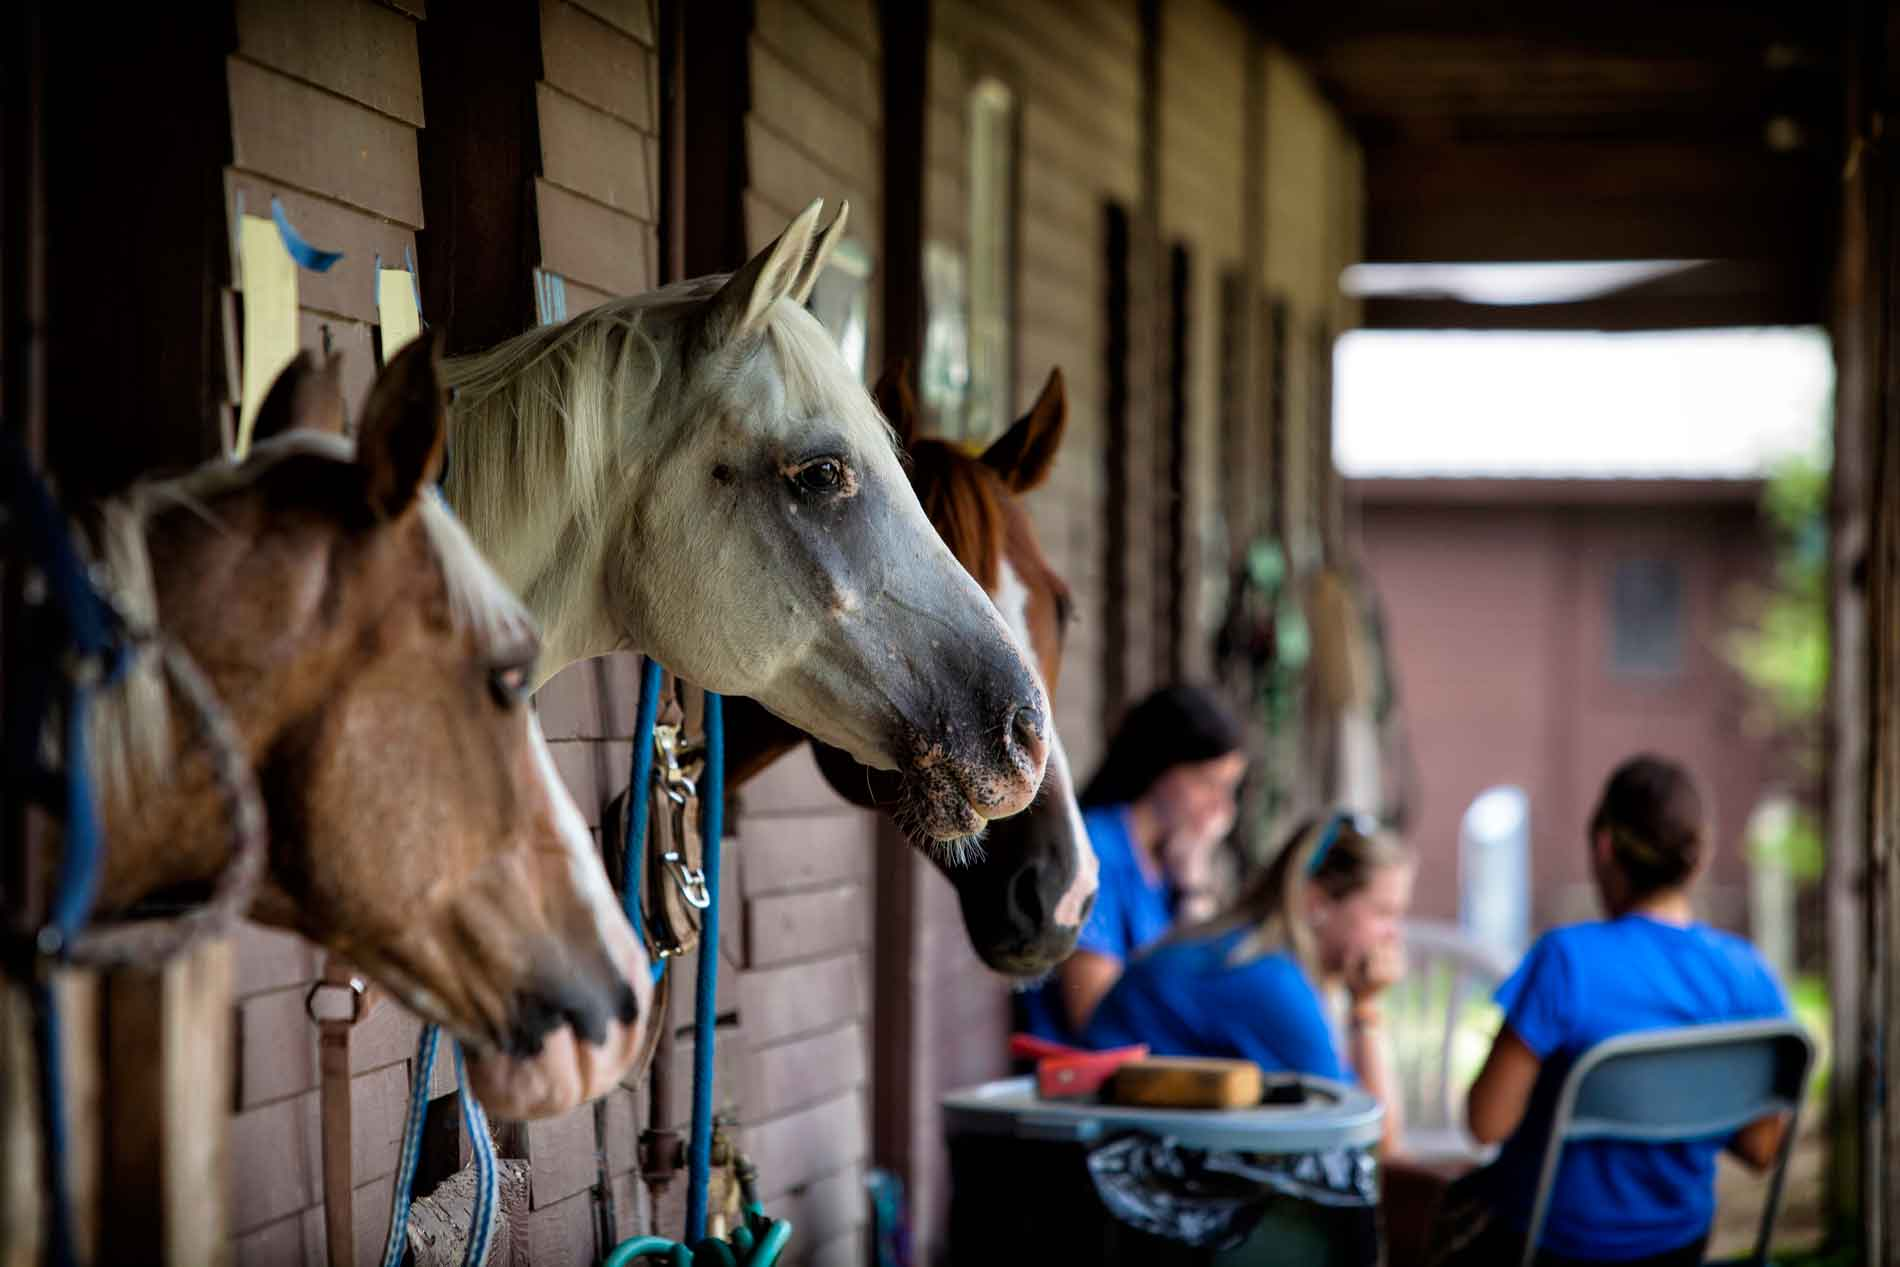 Horse riding stables